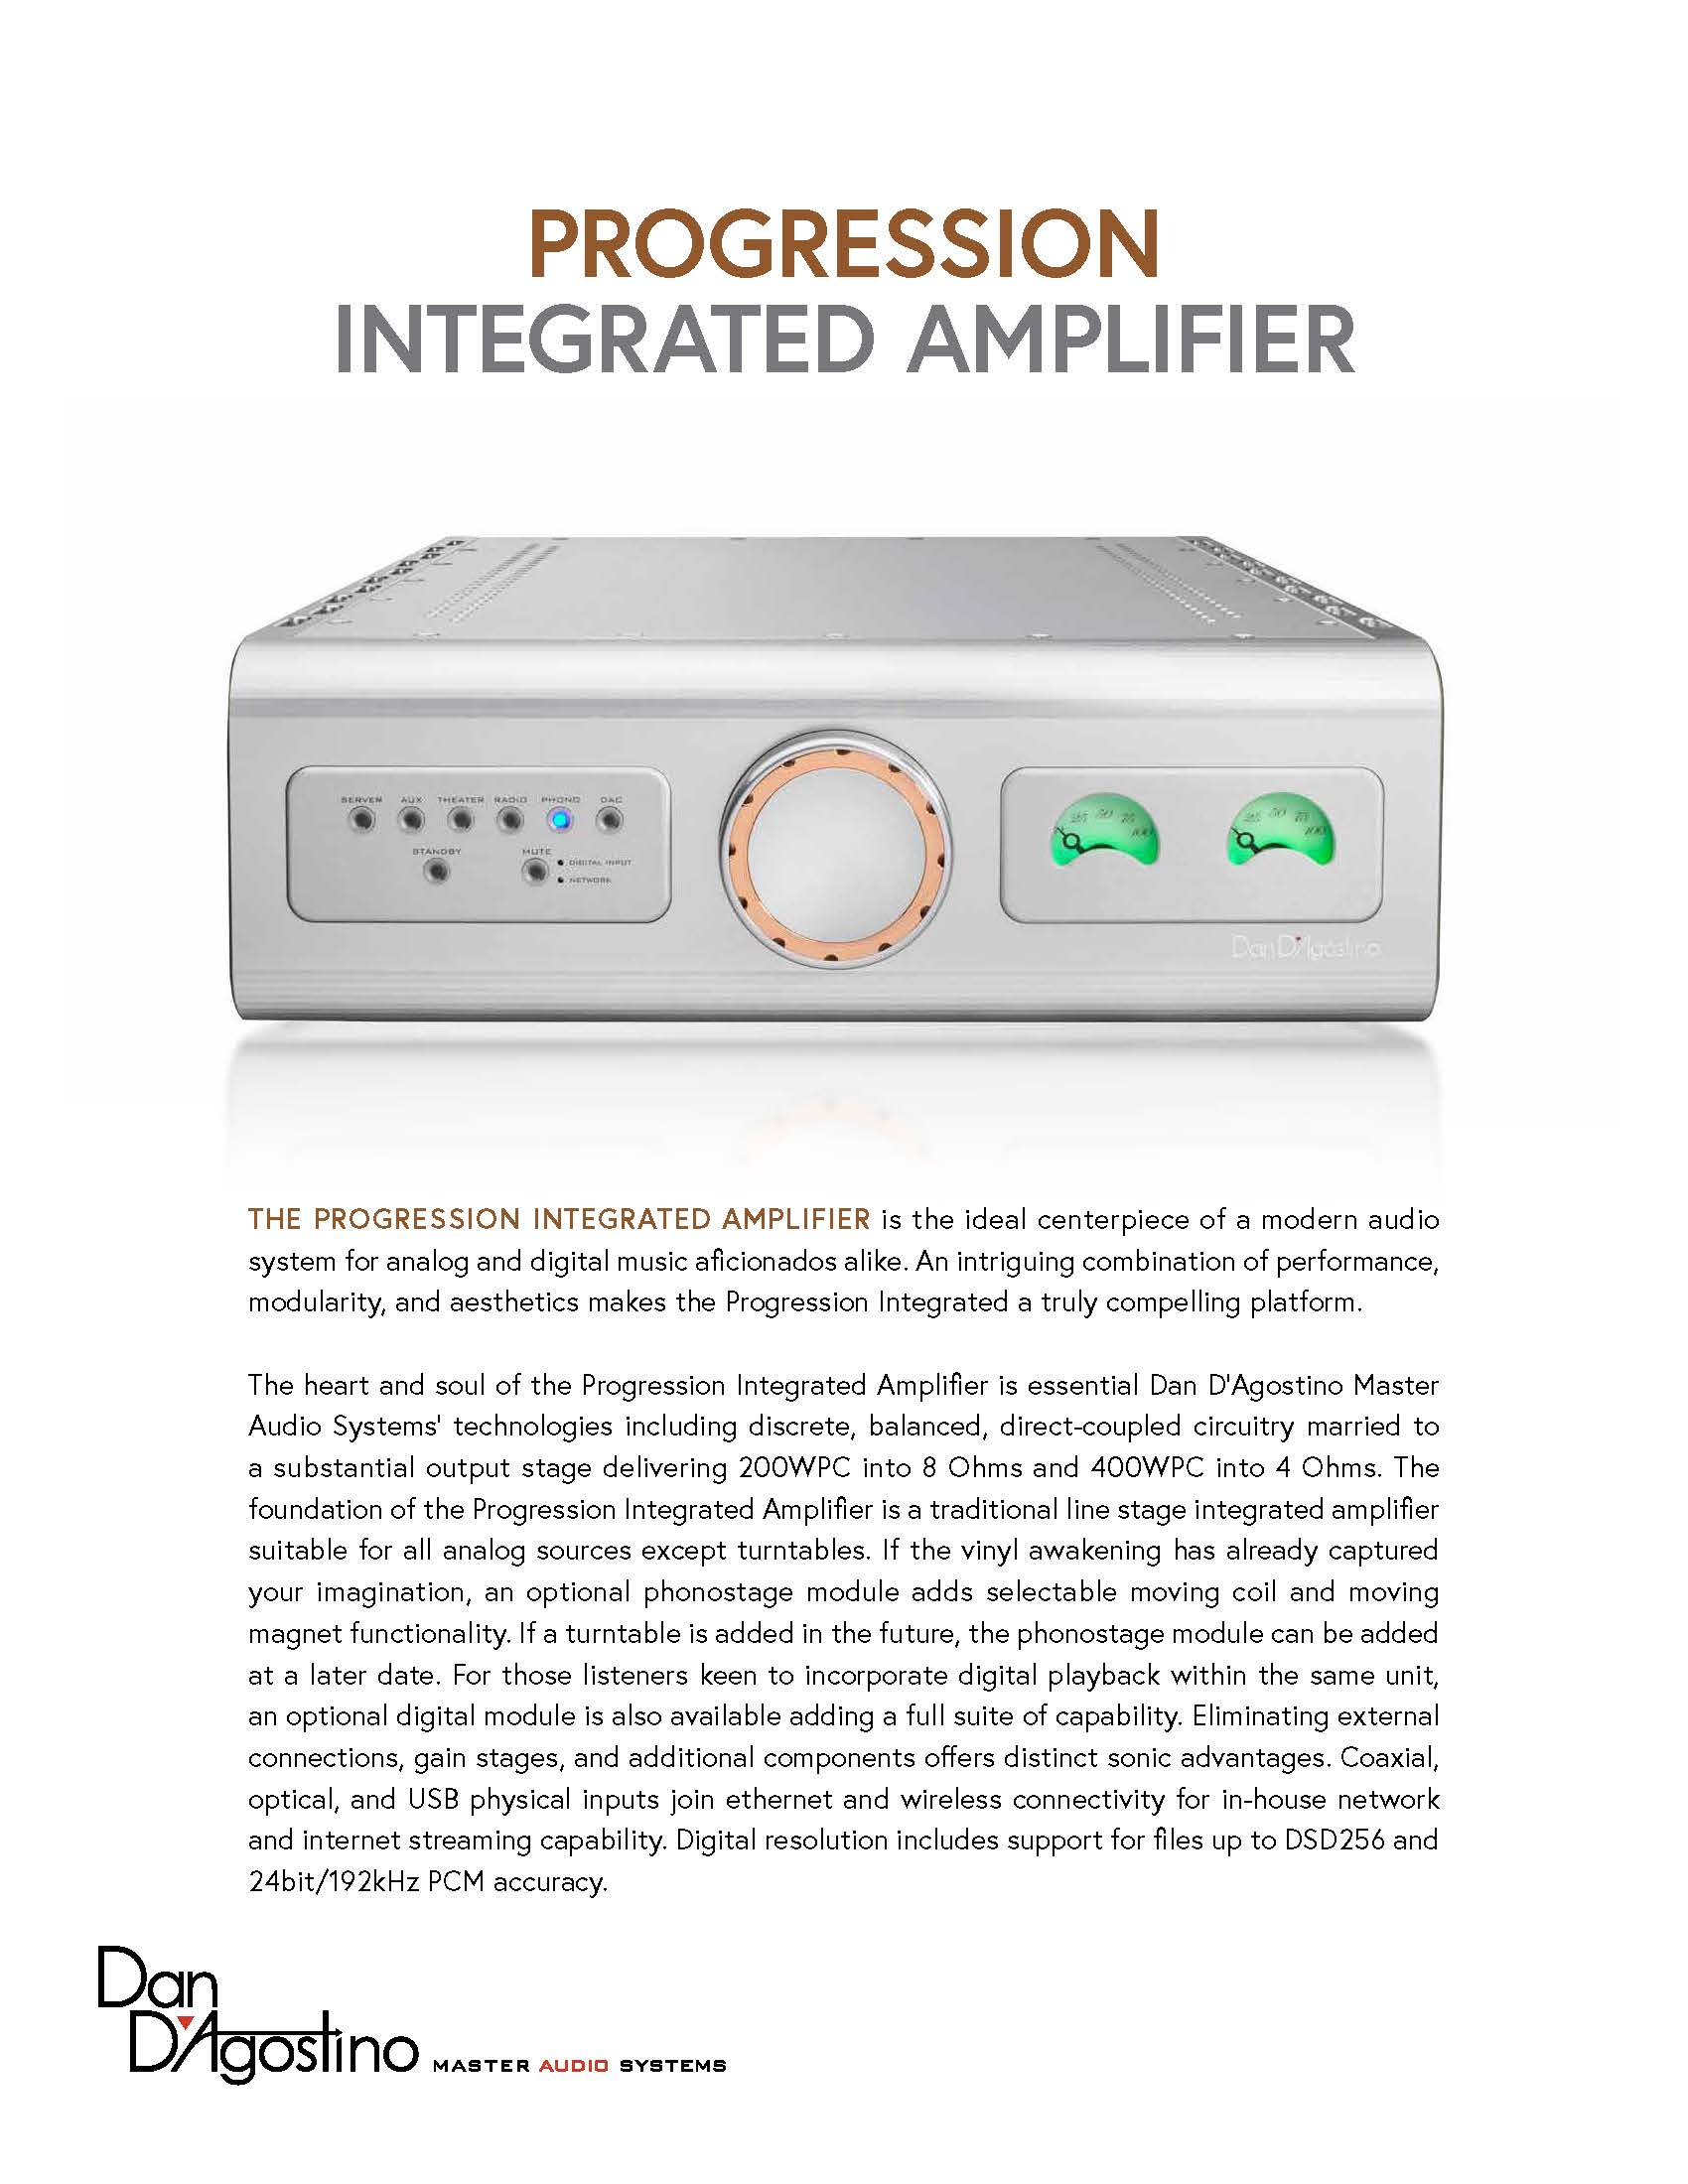 Dan D'Agostino Progression Integrated Amplifier Sell Sheet - Norman Audio